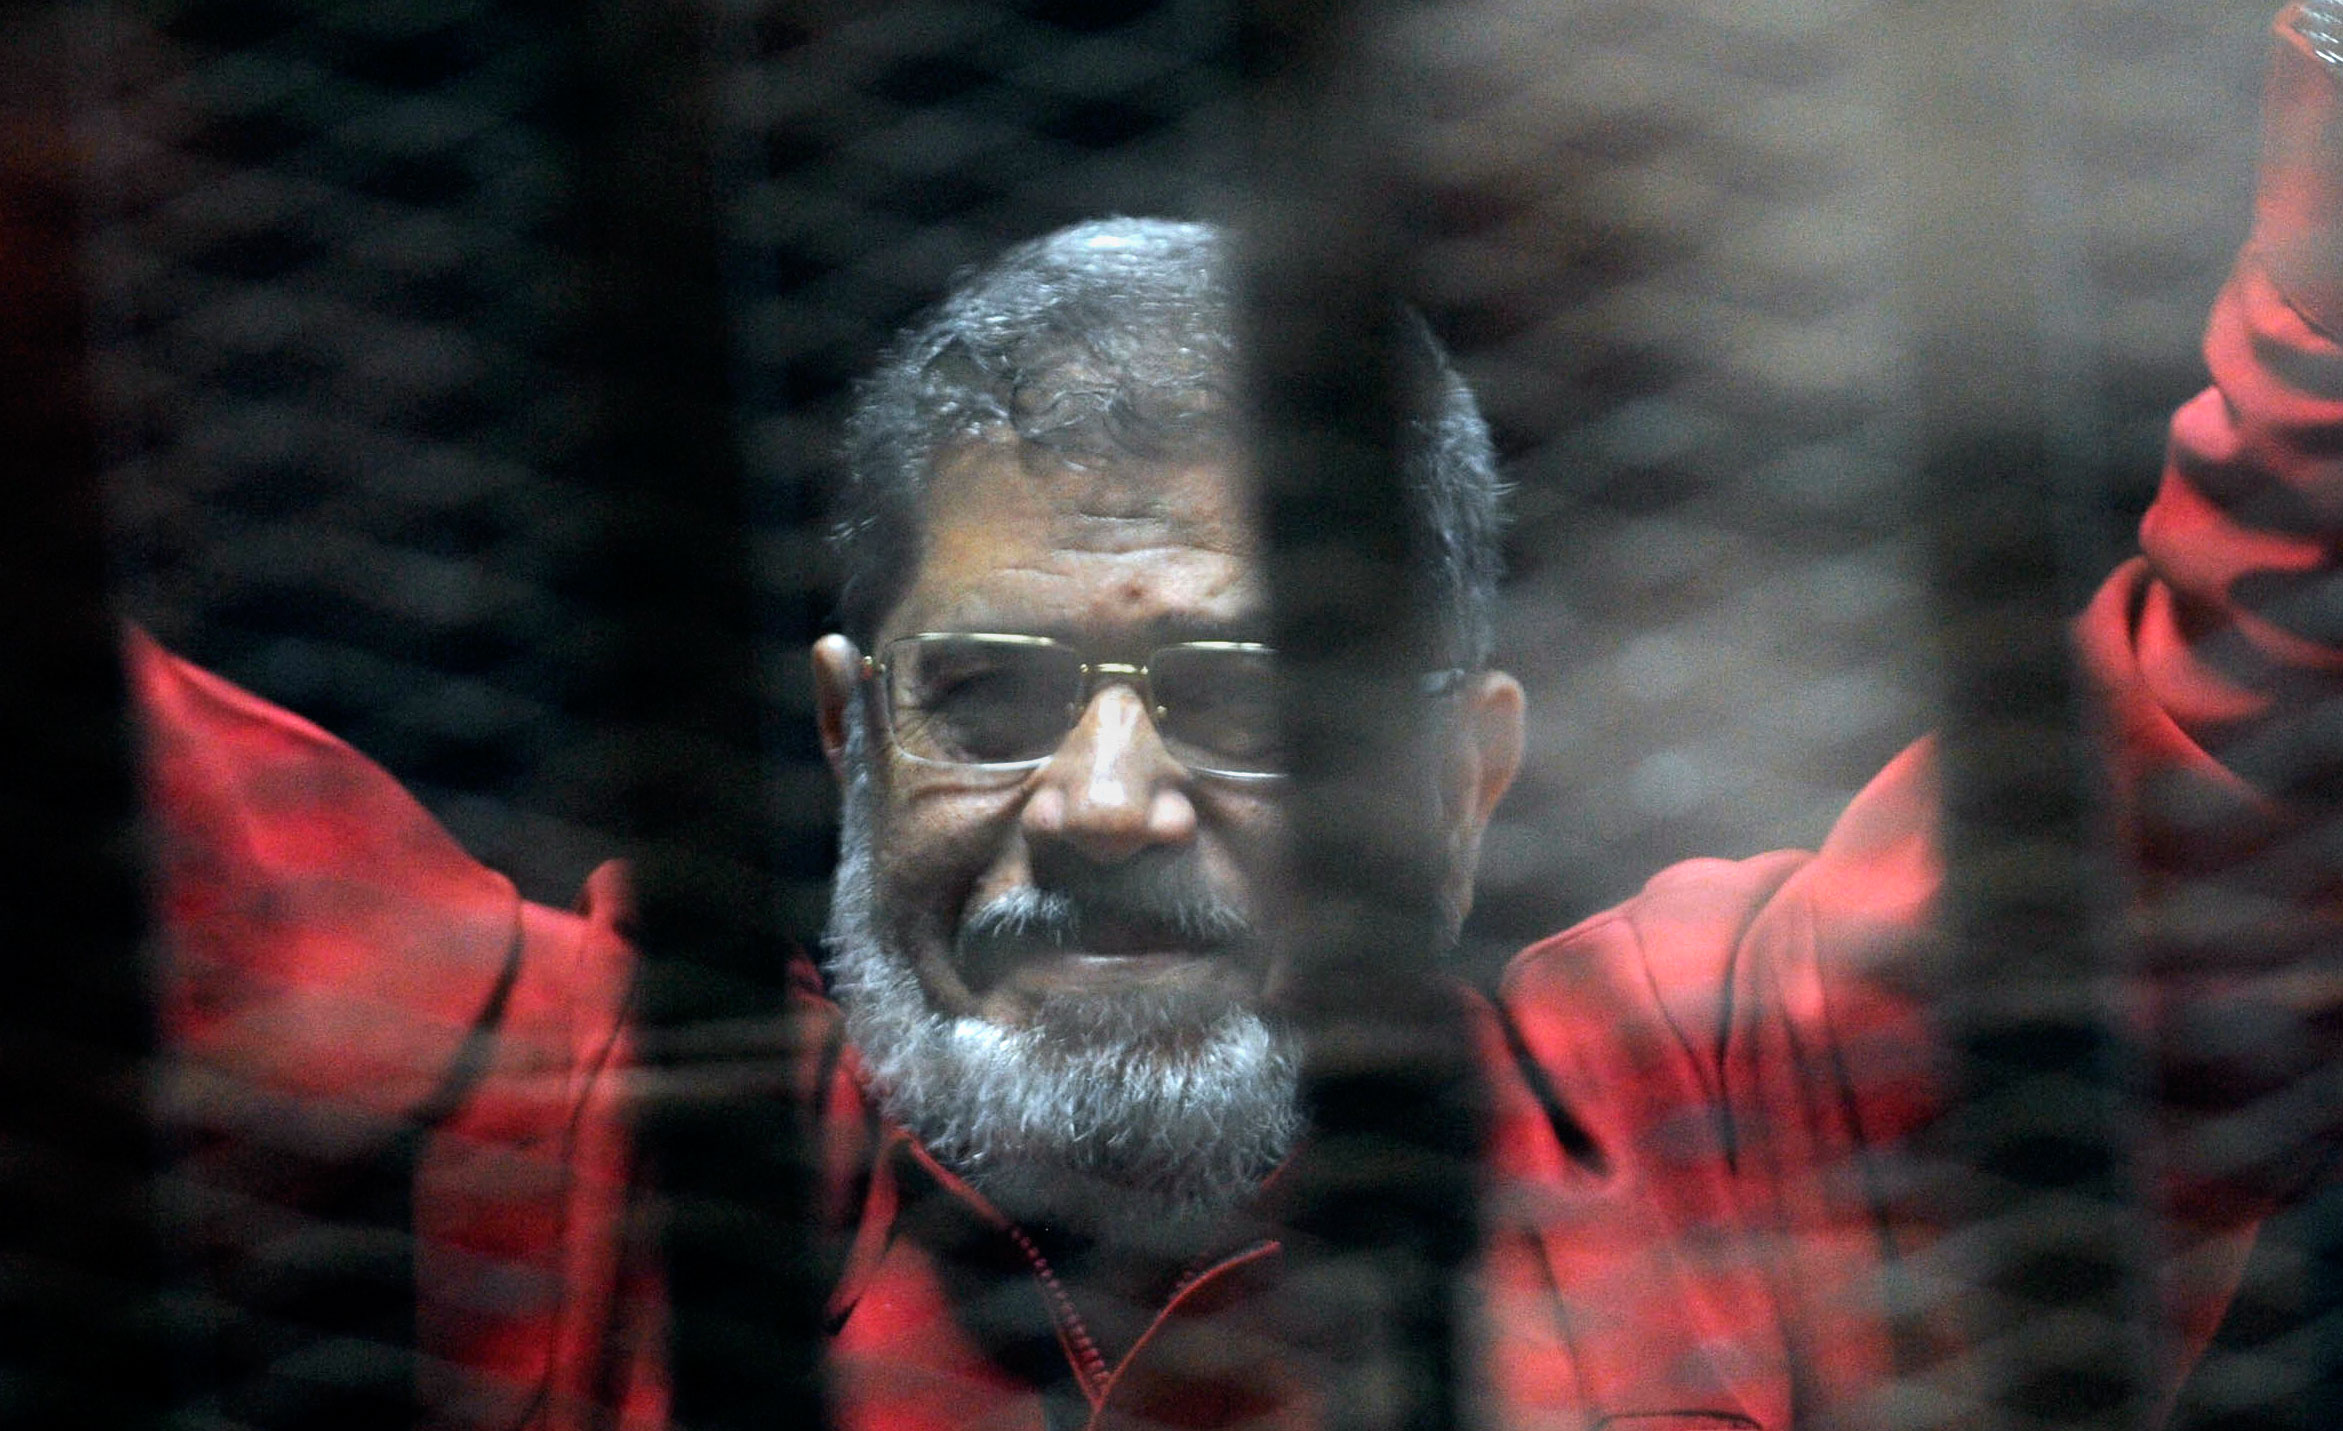 Egypt's ousted President Mohammed Morsi buried after death in courtroom